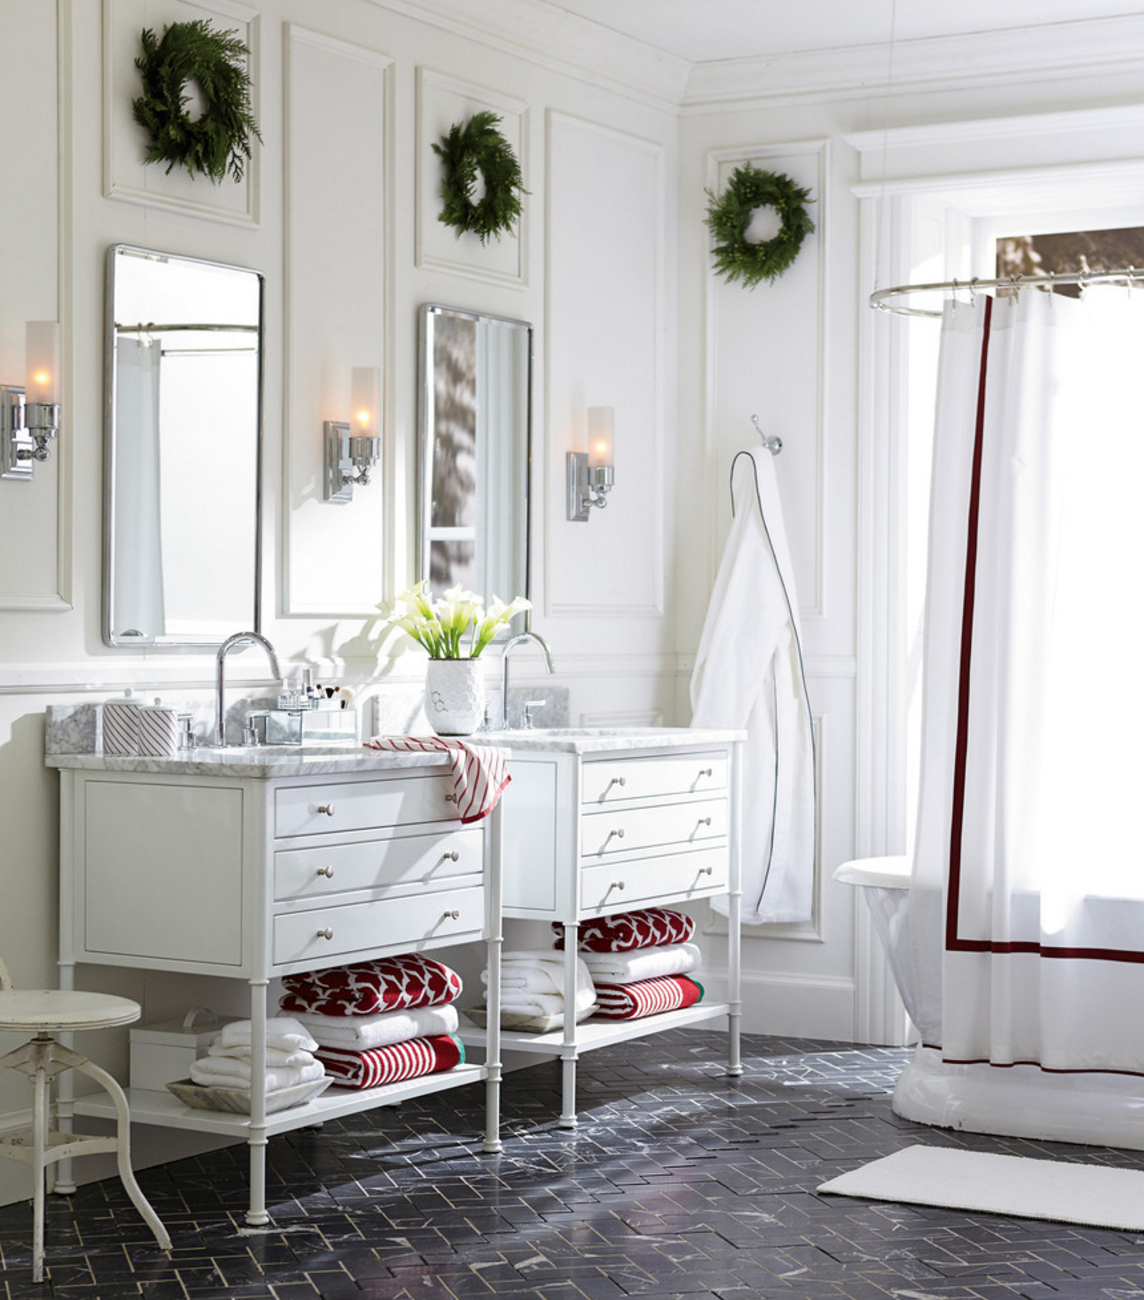 Using lighter colors can help a small bathroom seem larger ...